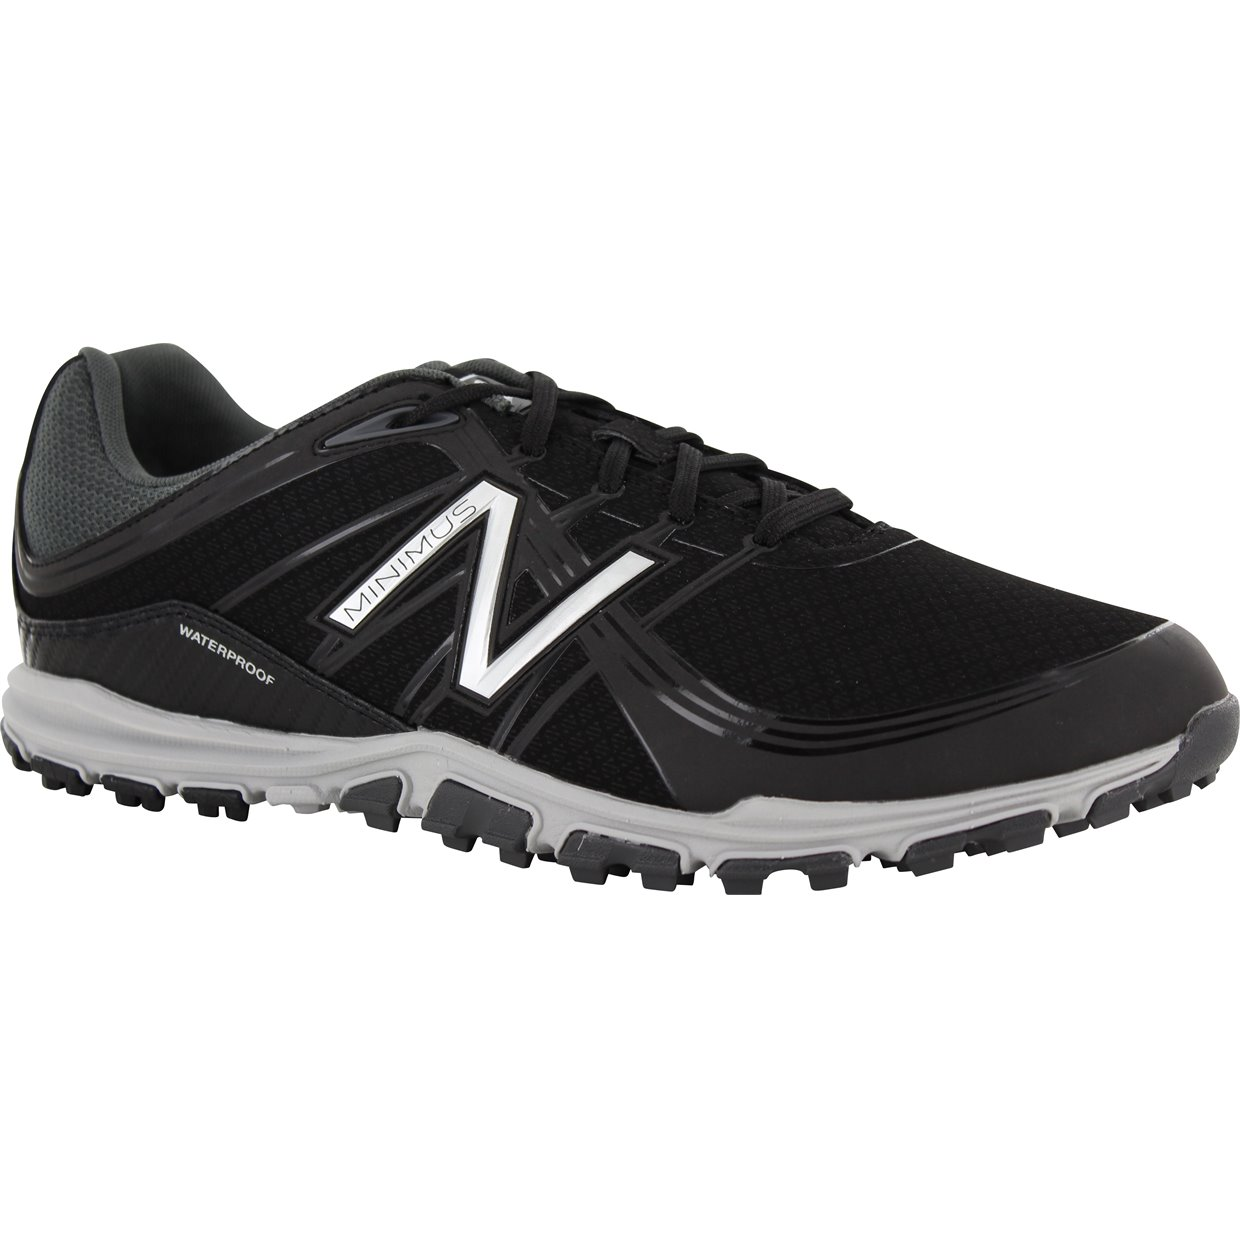 61a6bb90486e1 New Balance Minimus 1005 Spikeless Shoes at GlobalGolf.ca